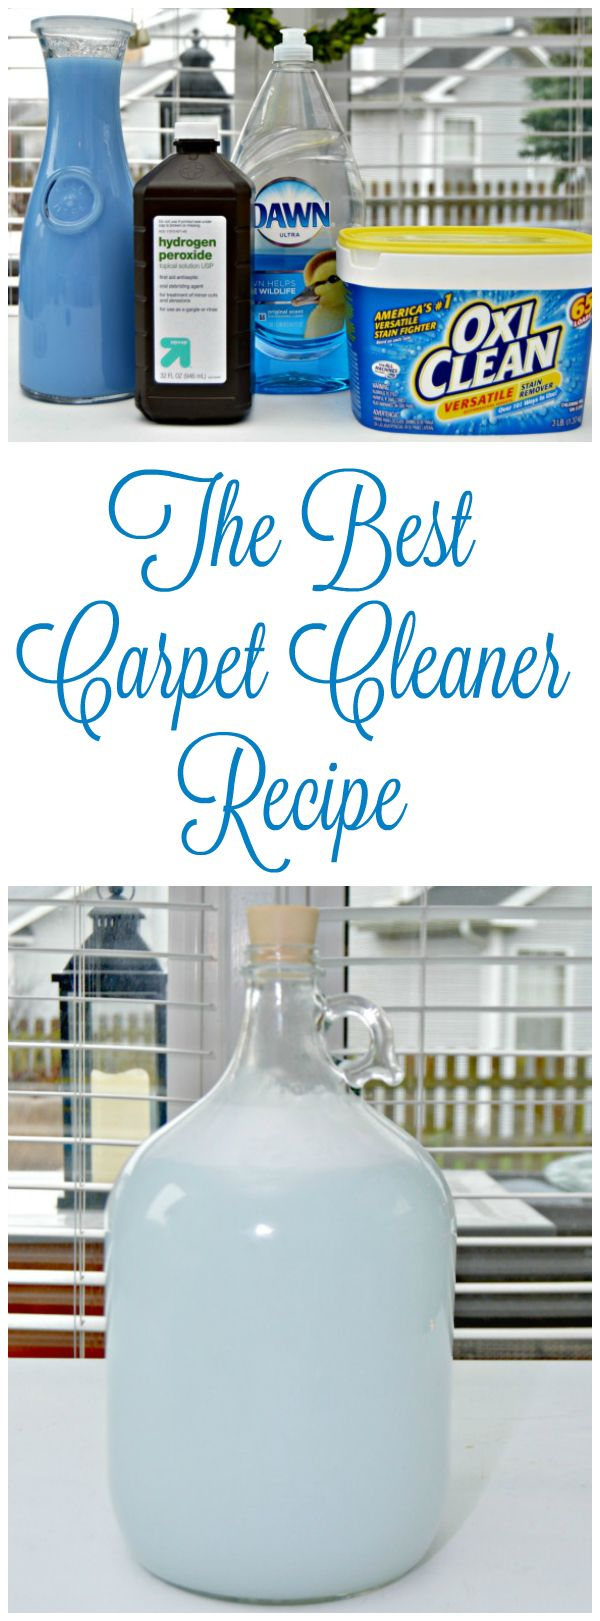 Best 25 Upholstery Cleaner Ideas On Pinterest Carpet And Upholstery Cleaner Diy Carpet